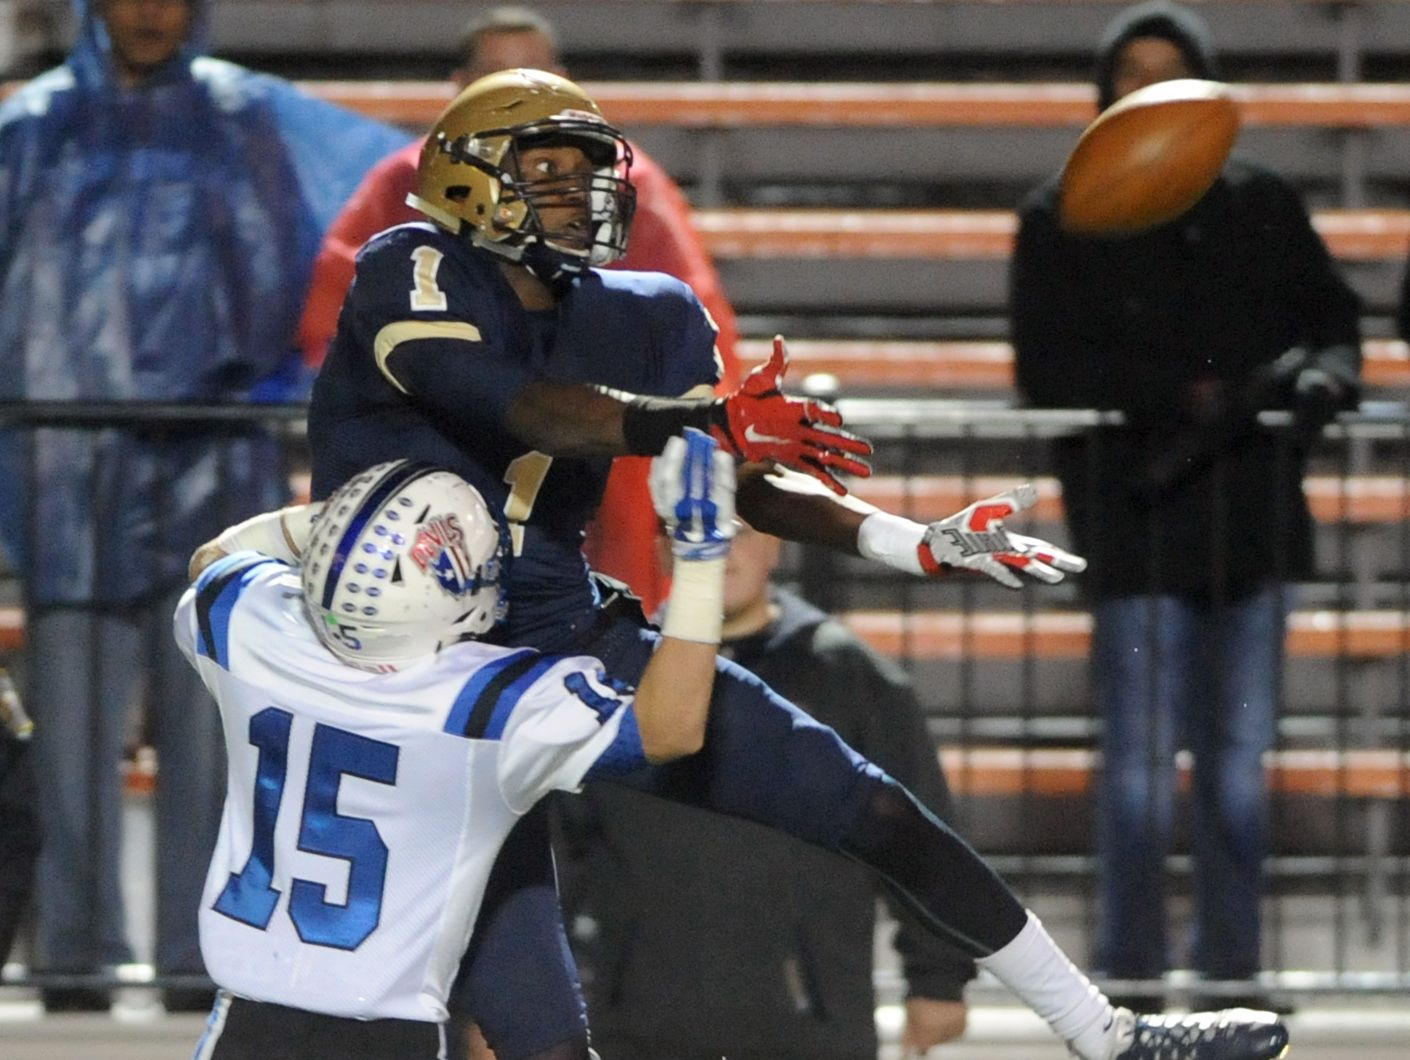 Zanesville's Ben Kaufman defends Akron Hoban's Jonah Morris as Morris leaps to make a catch during the Blue Devils' 33-21 Division III state semifinals loss Friday night in Massillon.